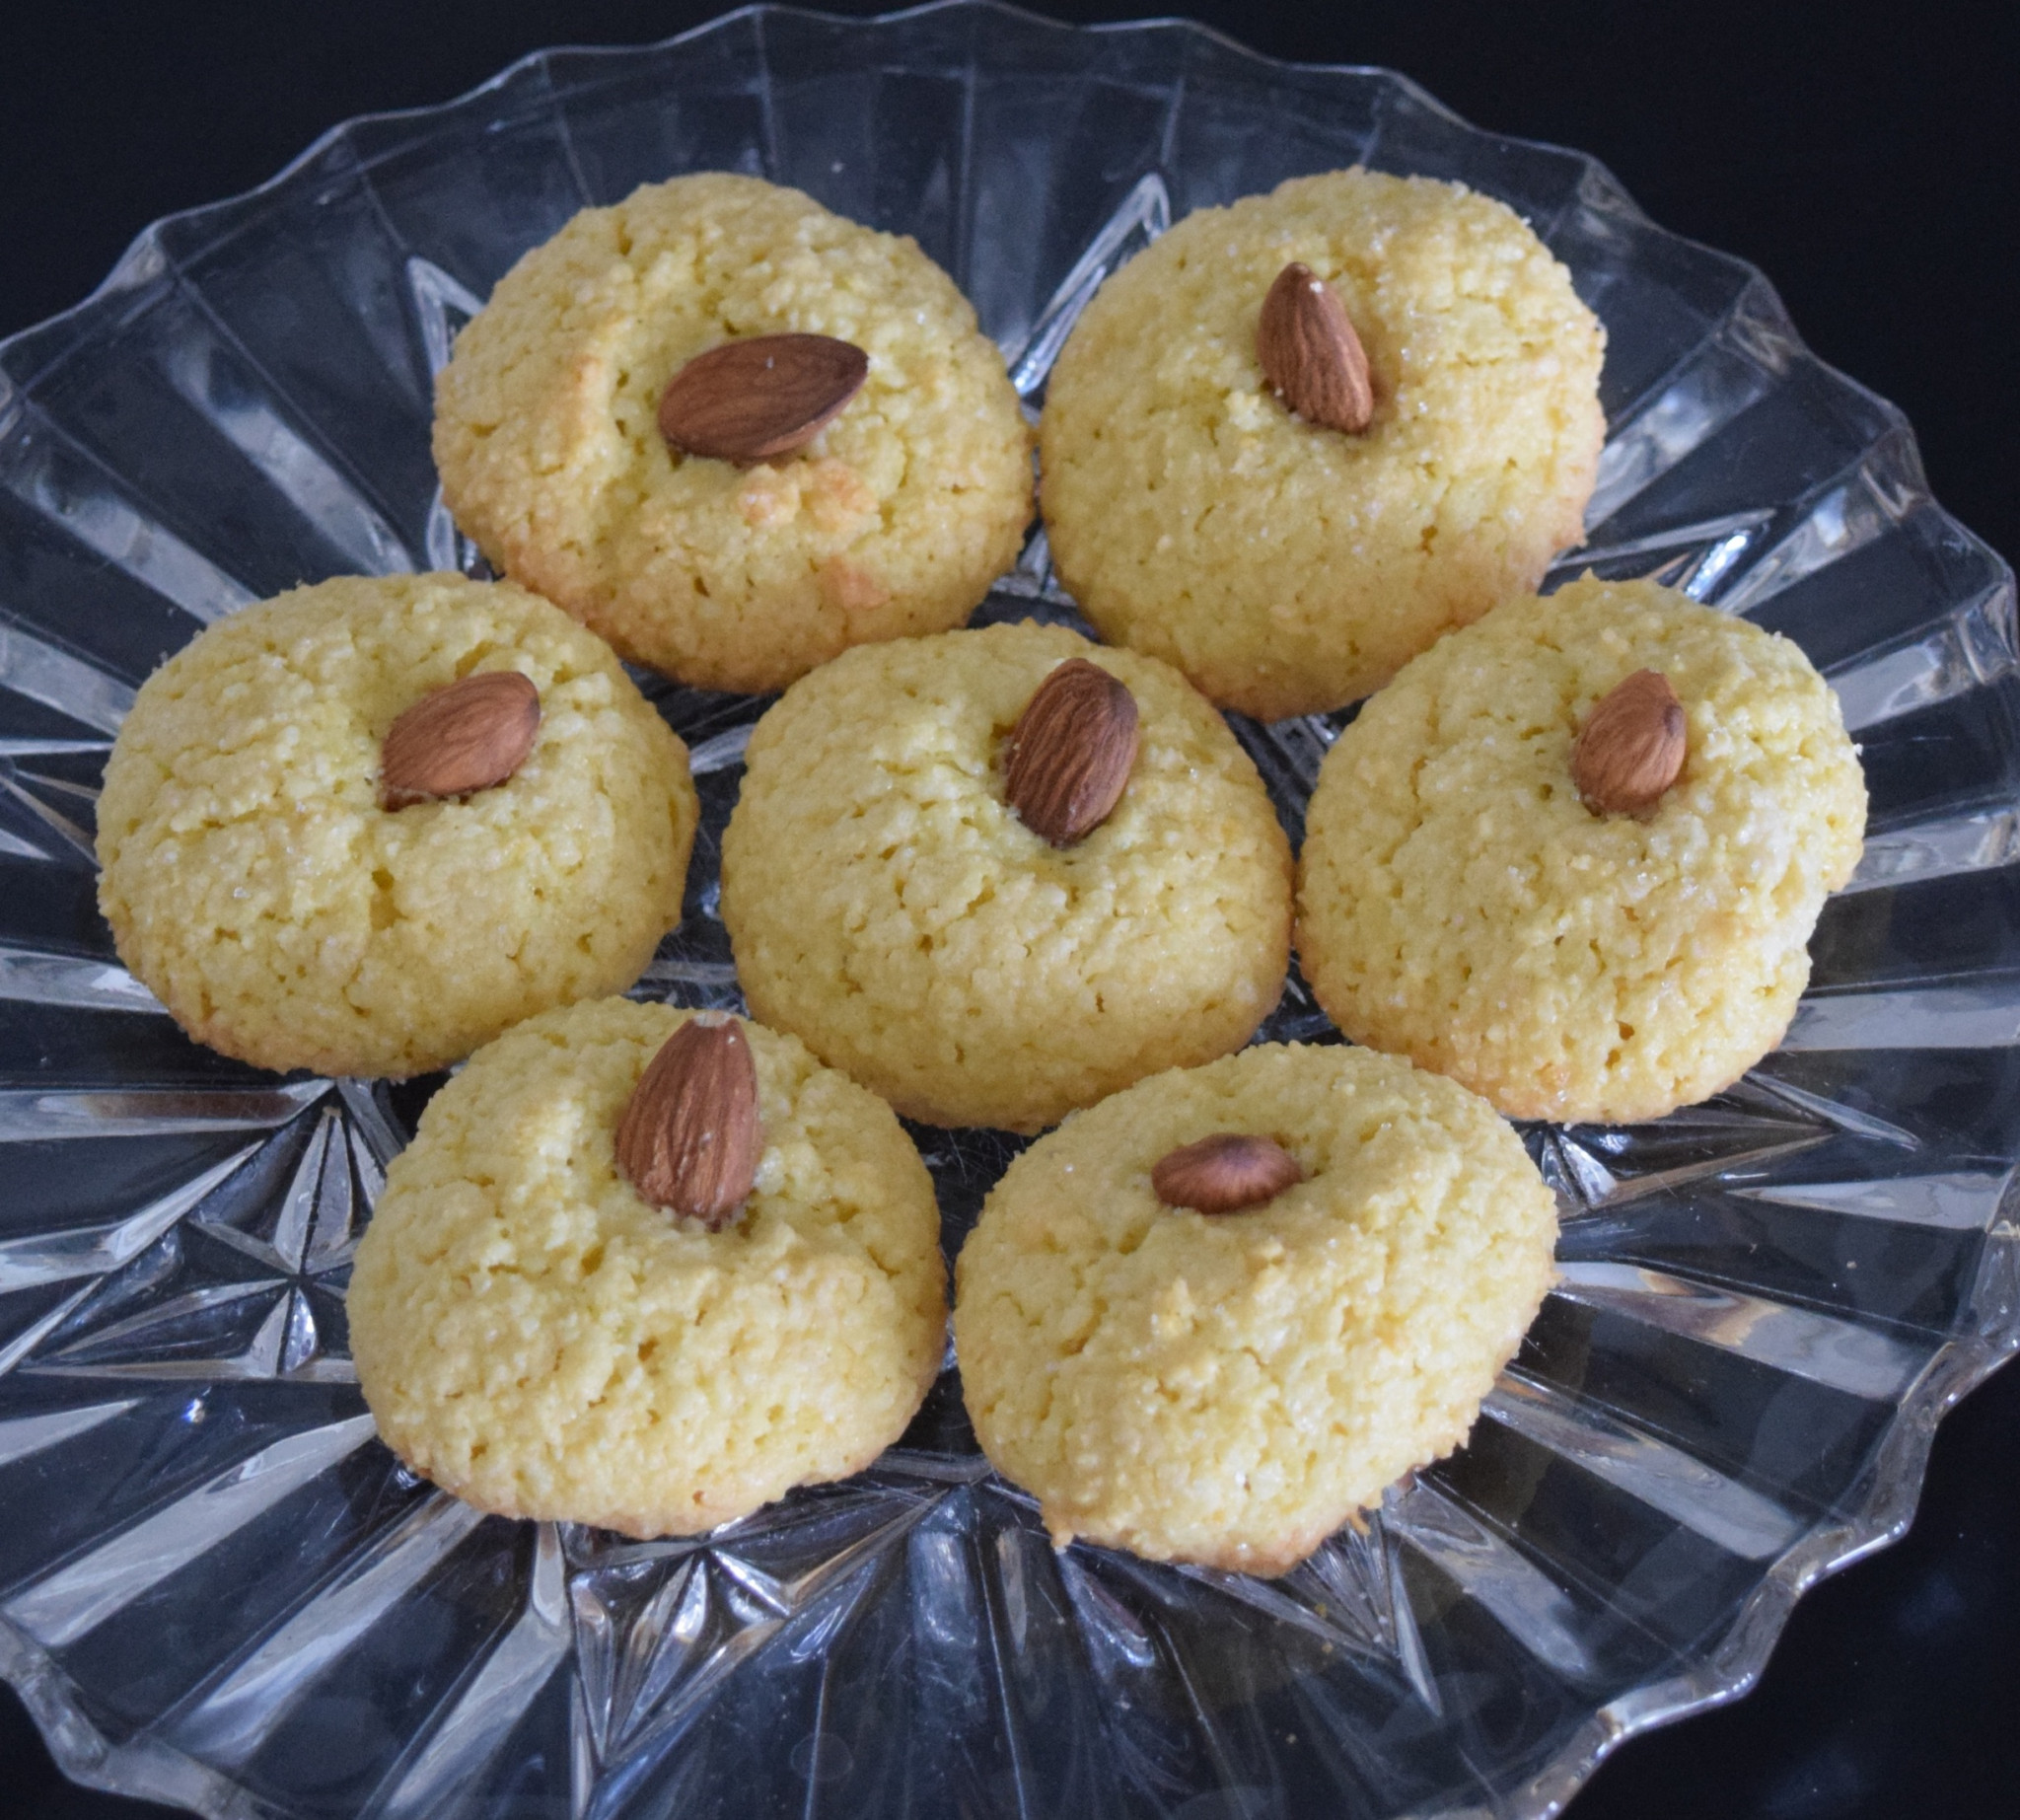 Recipe #2: Lemond and Almond Macaroons